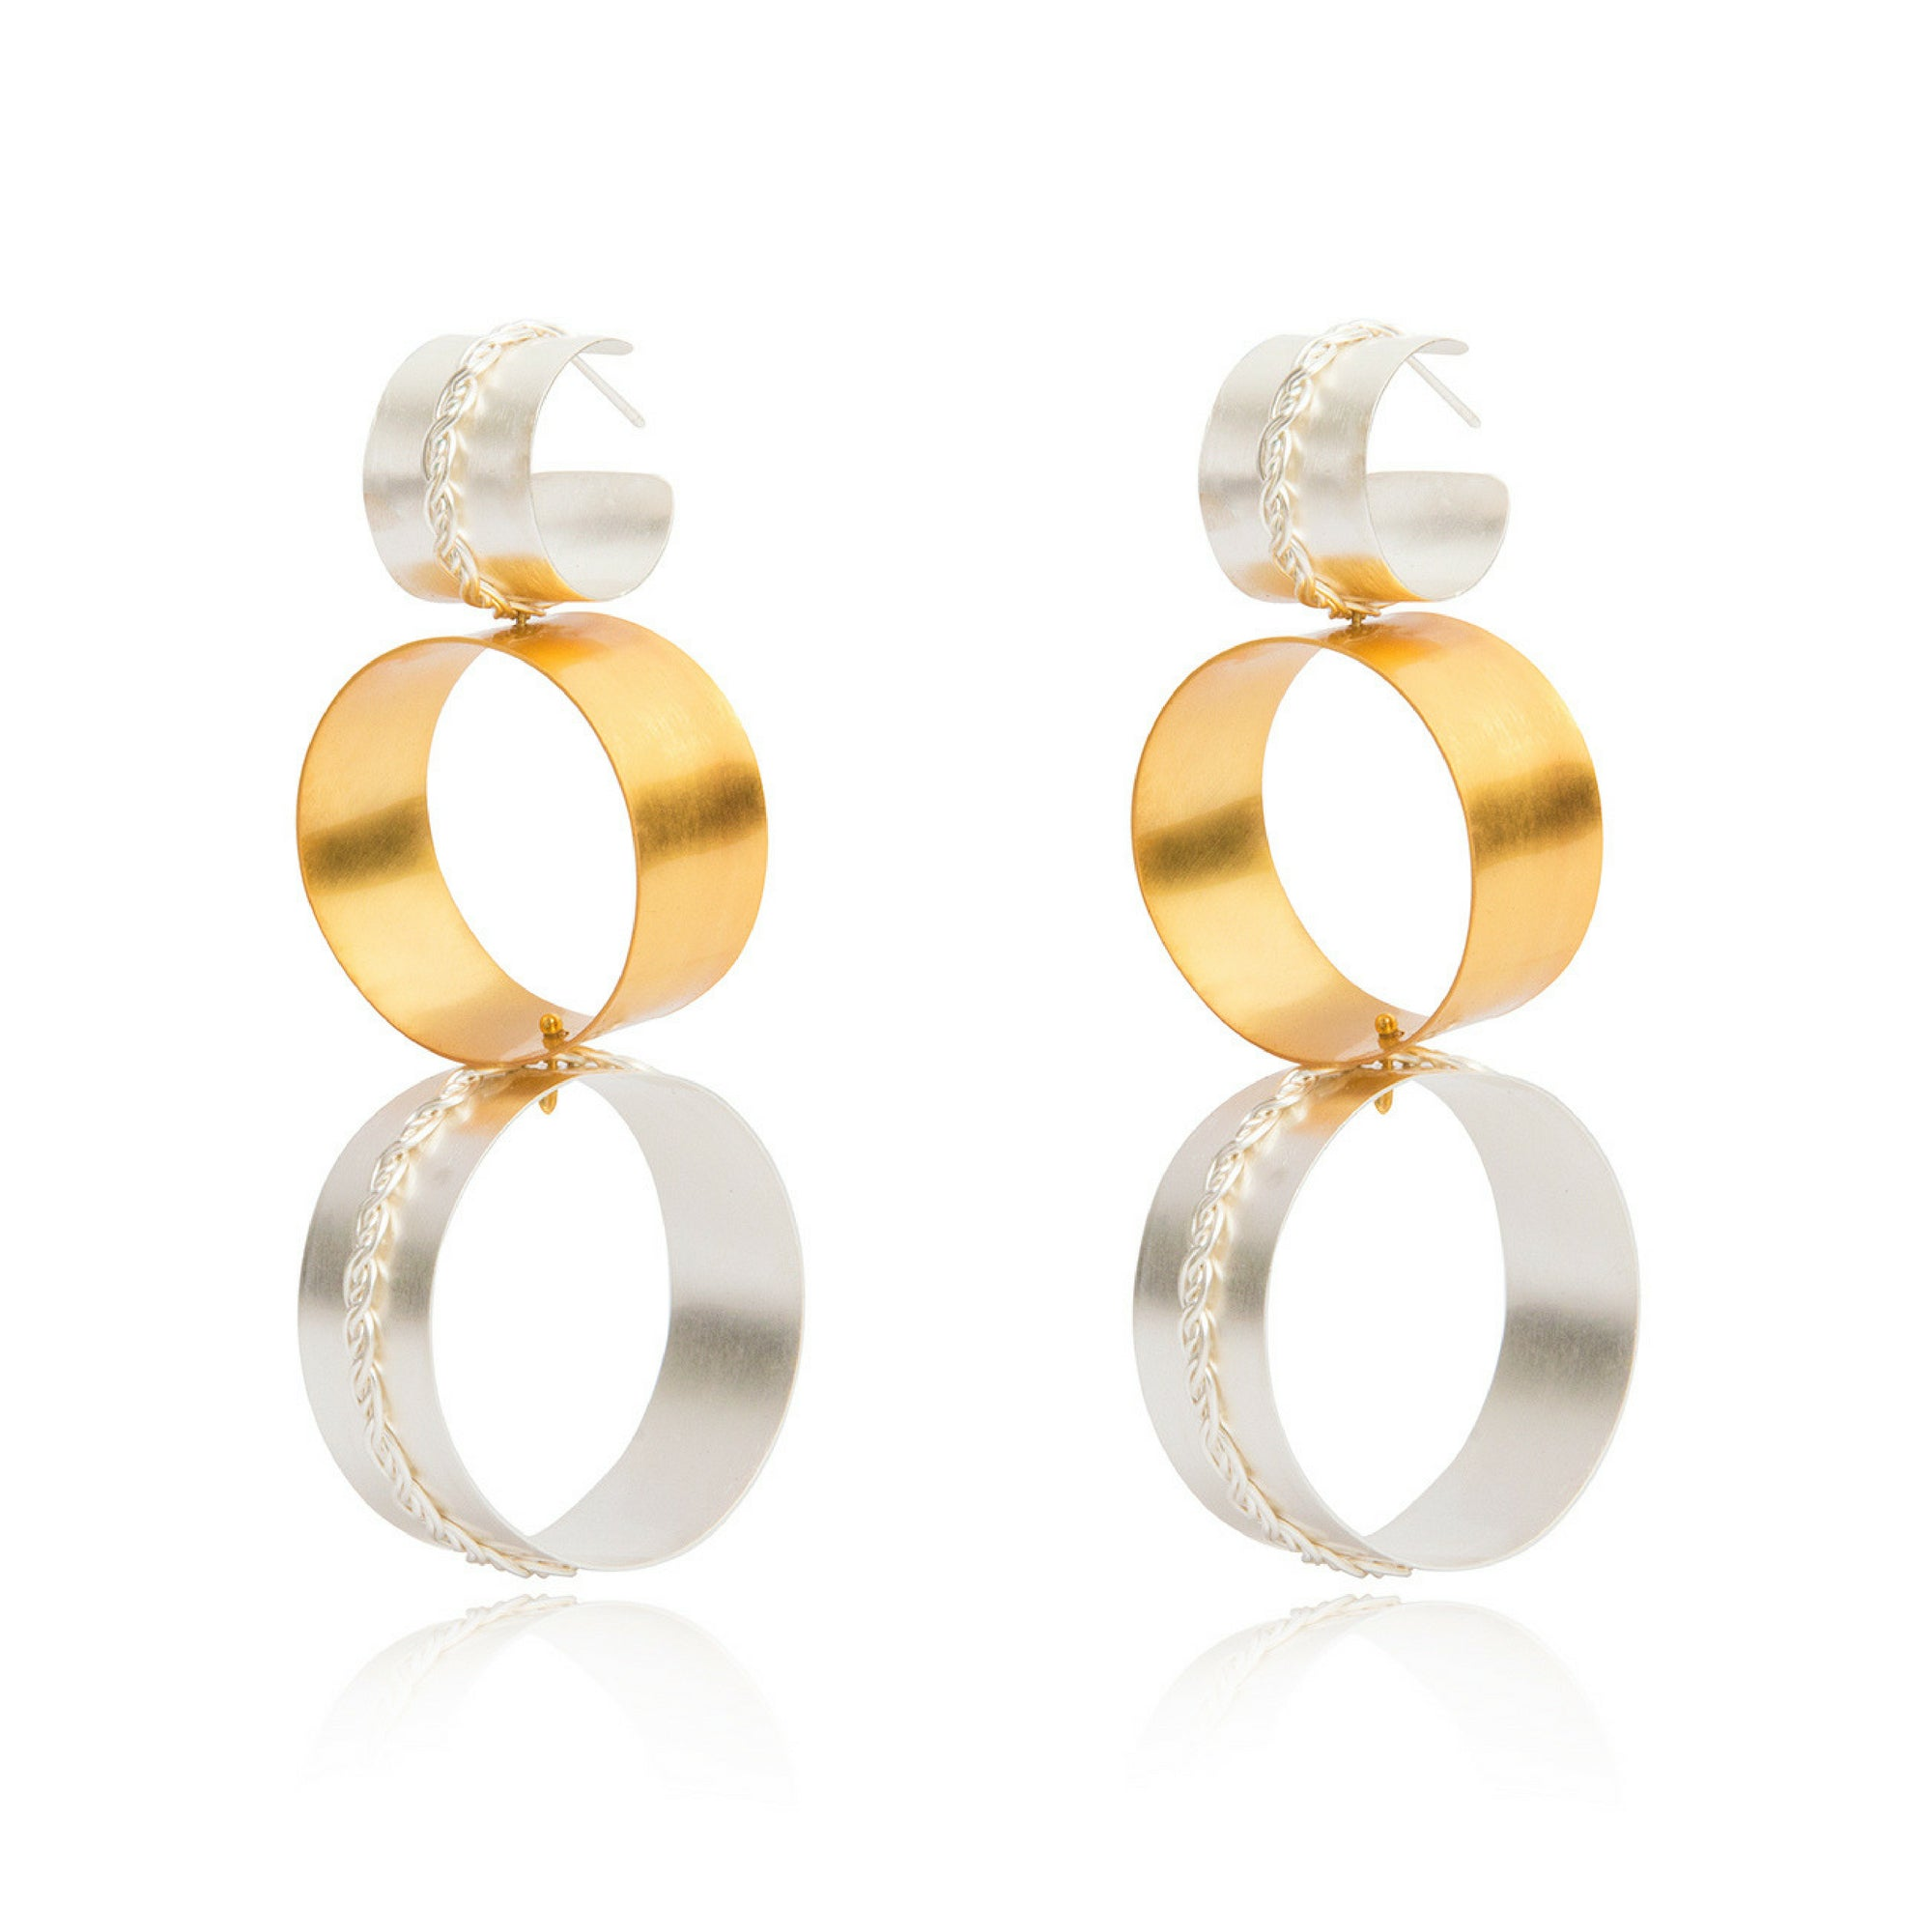 Liza Echeverry Jewelry Colombia Connection Earrings Mixed Gold